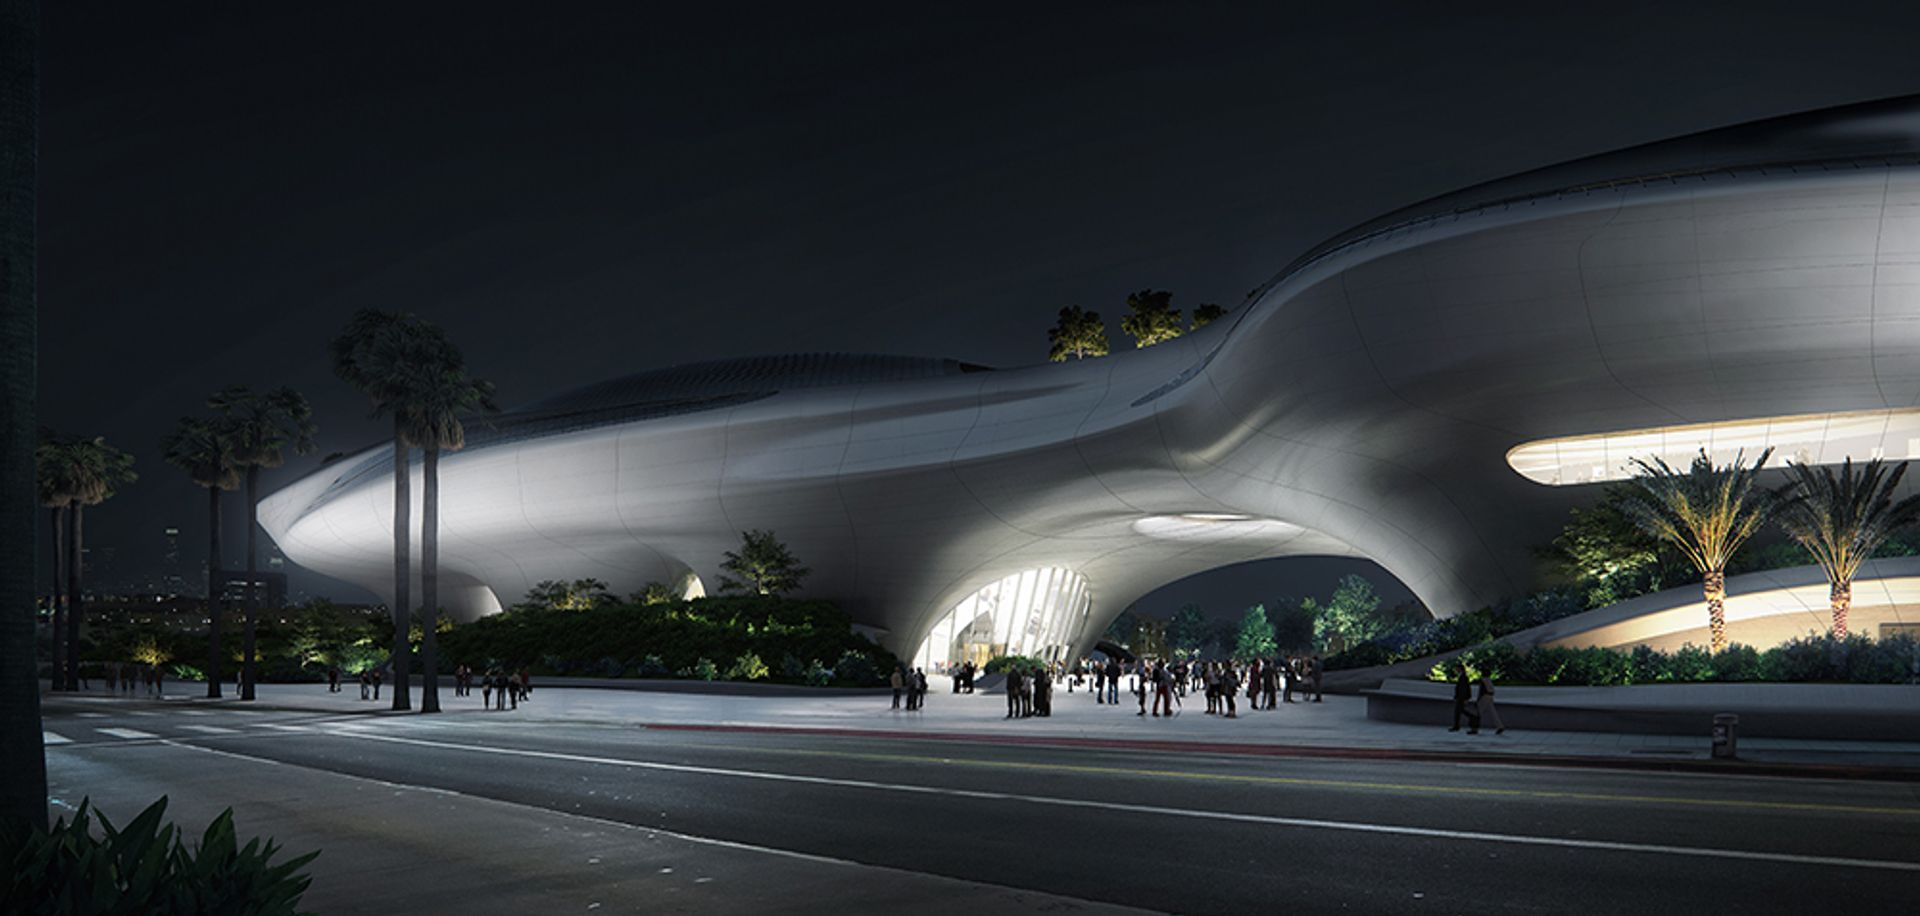 Rendering of the new Lucas Museum of Narrative Art courtesy of MAD Architects